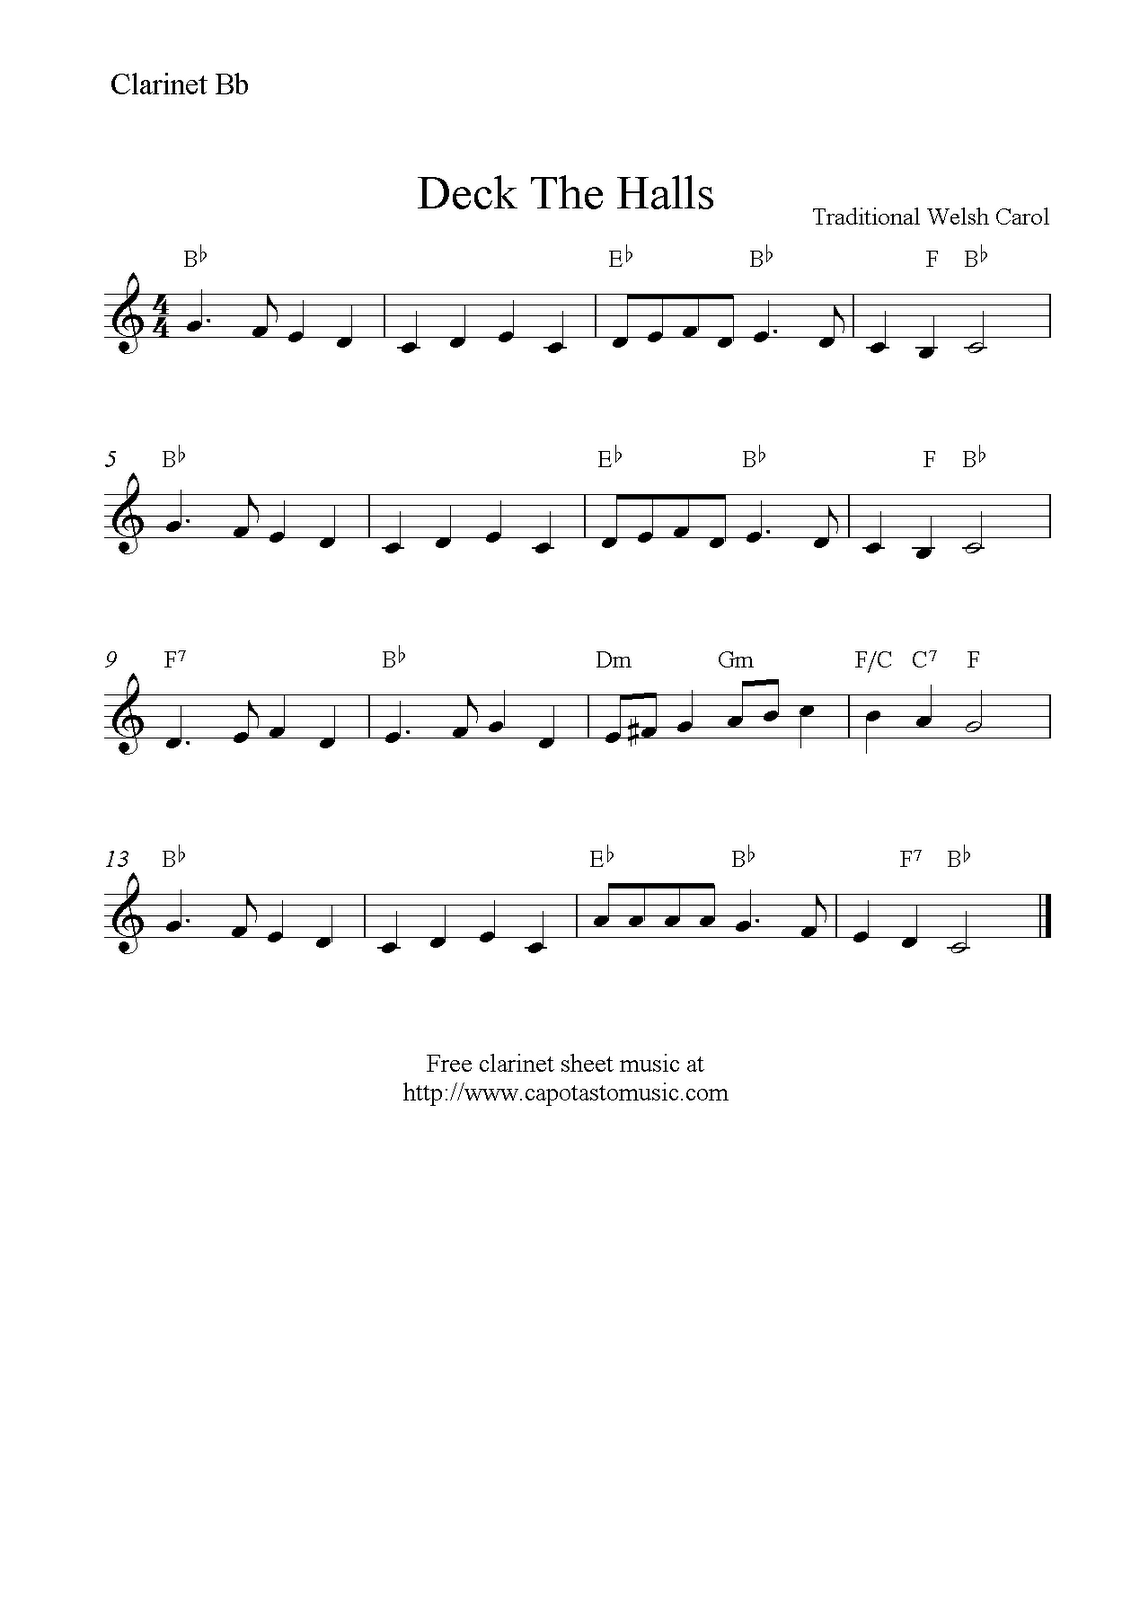 Deck the halls free christmas clarinet sheet music notes